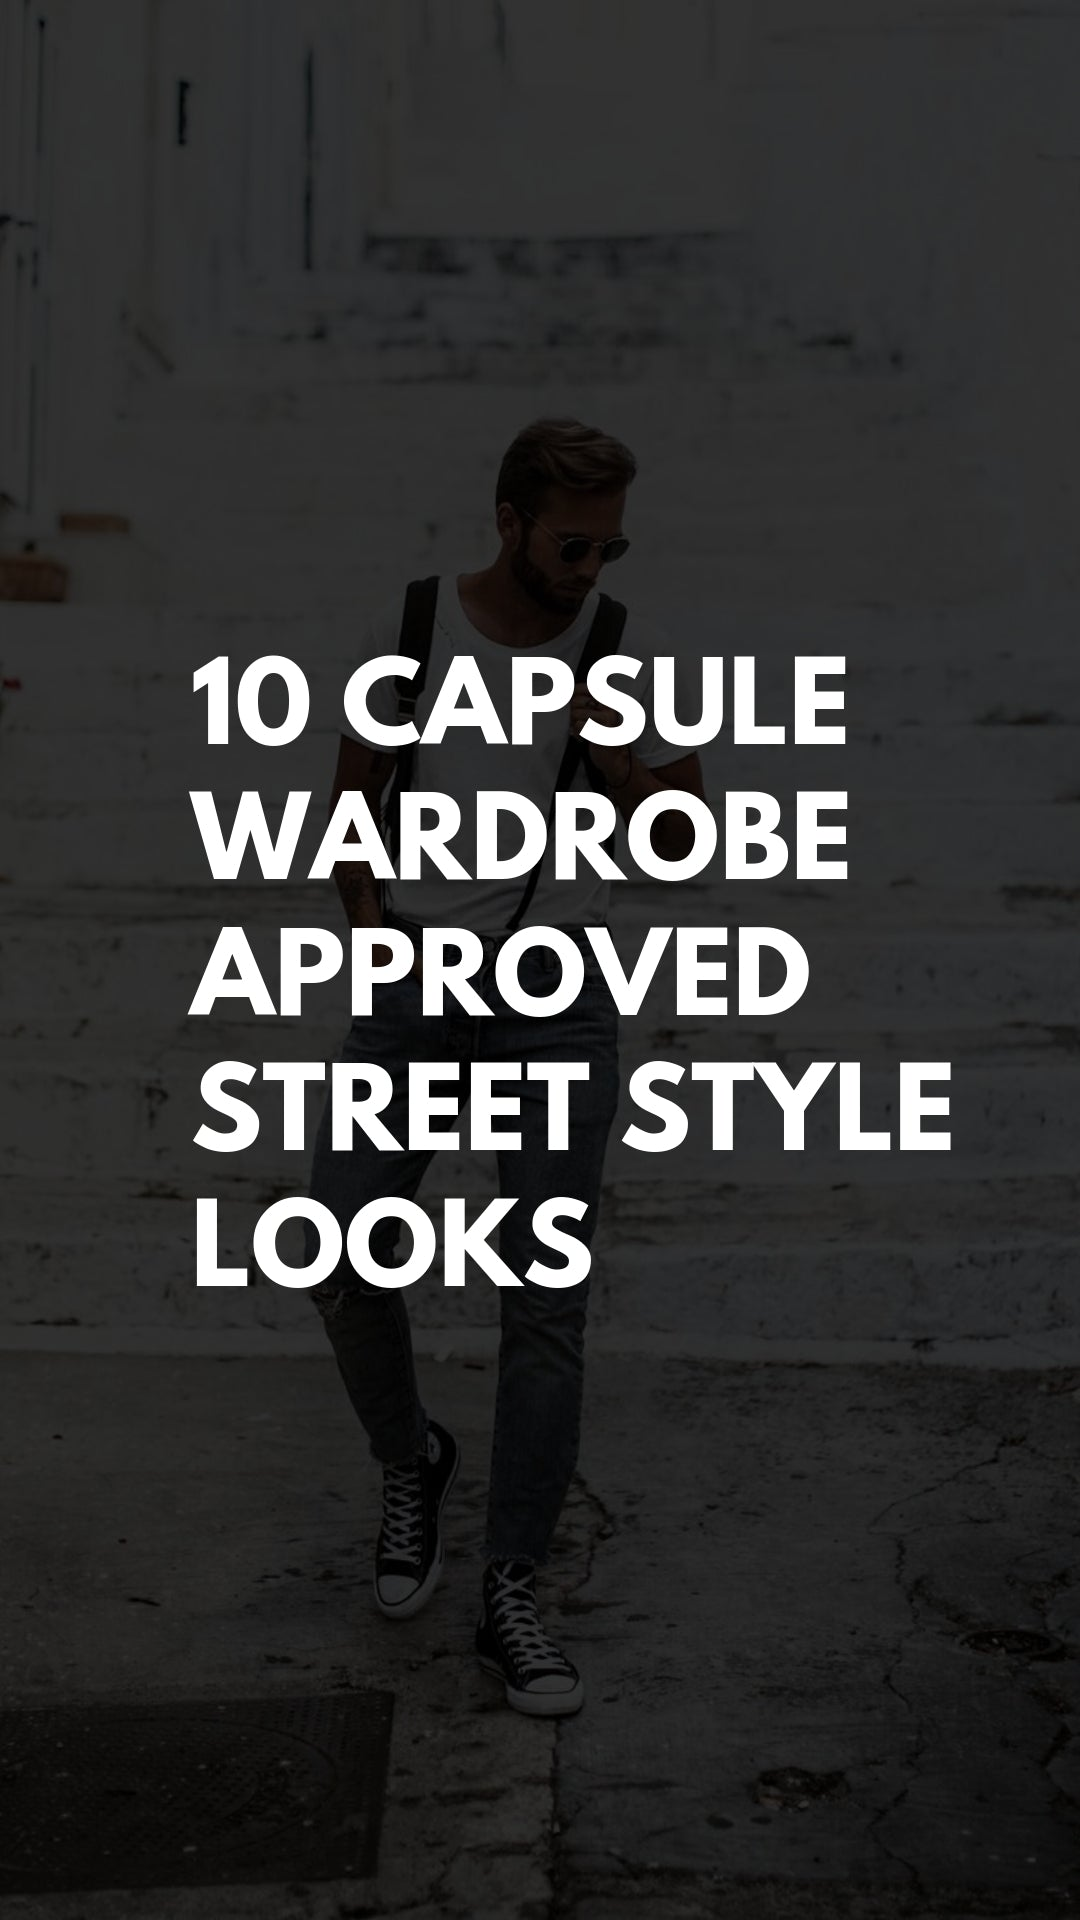 10 Capsule Wardrobe Approved Street Style Looks